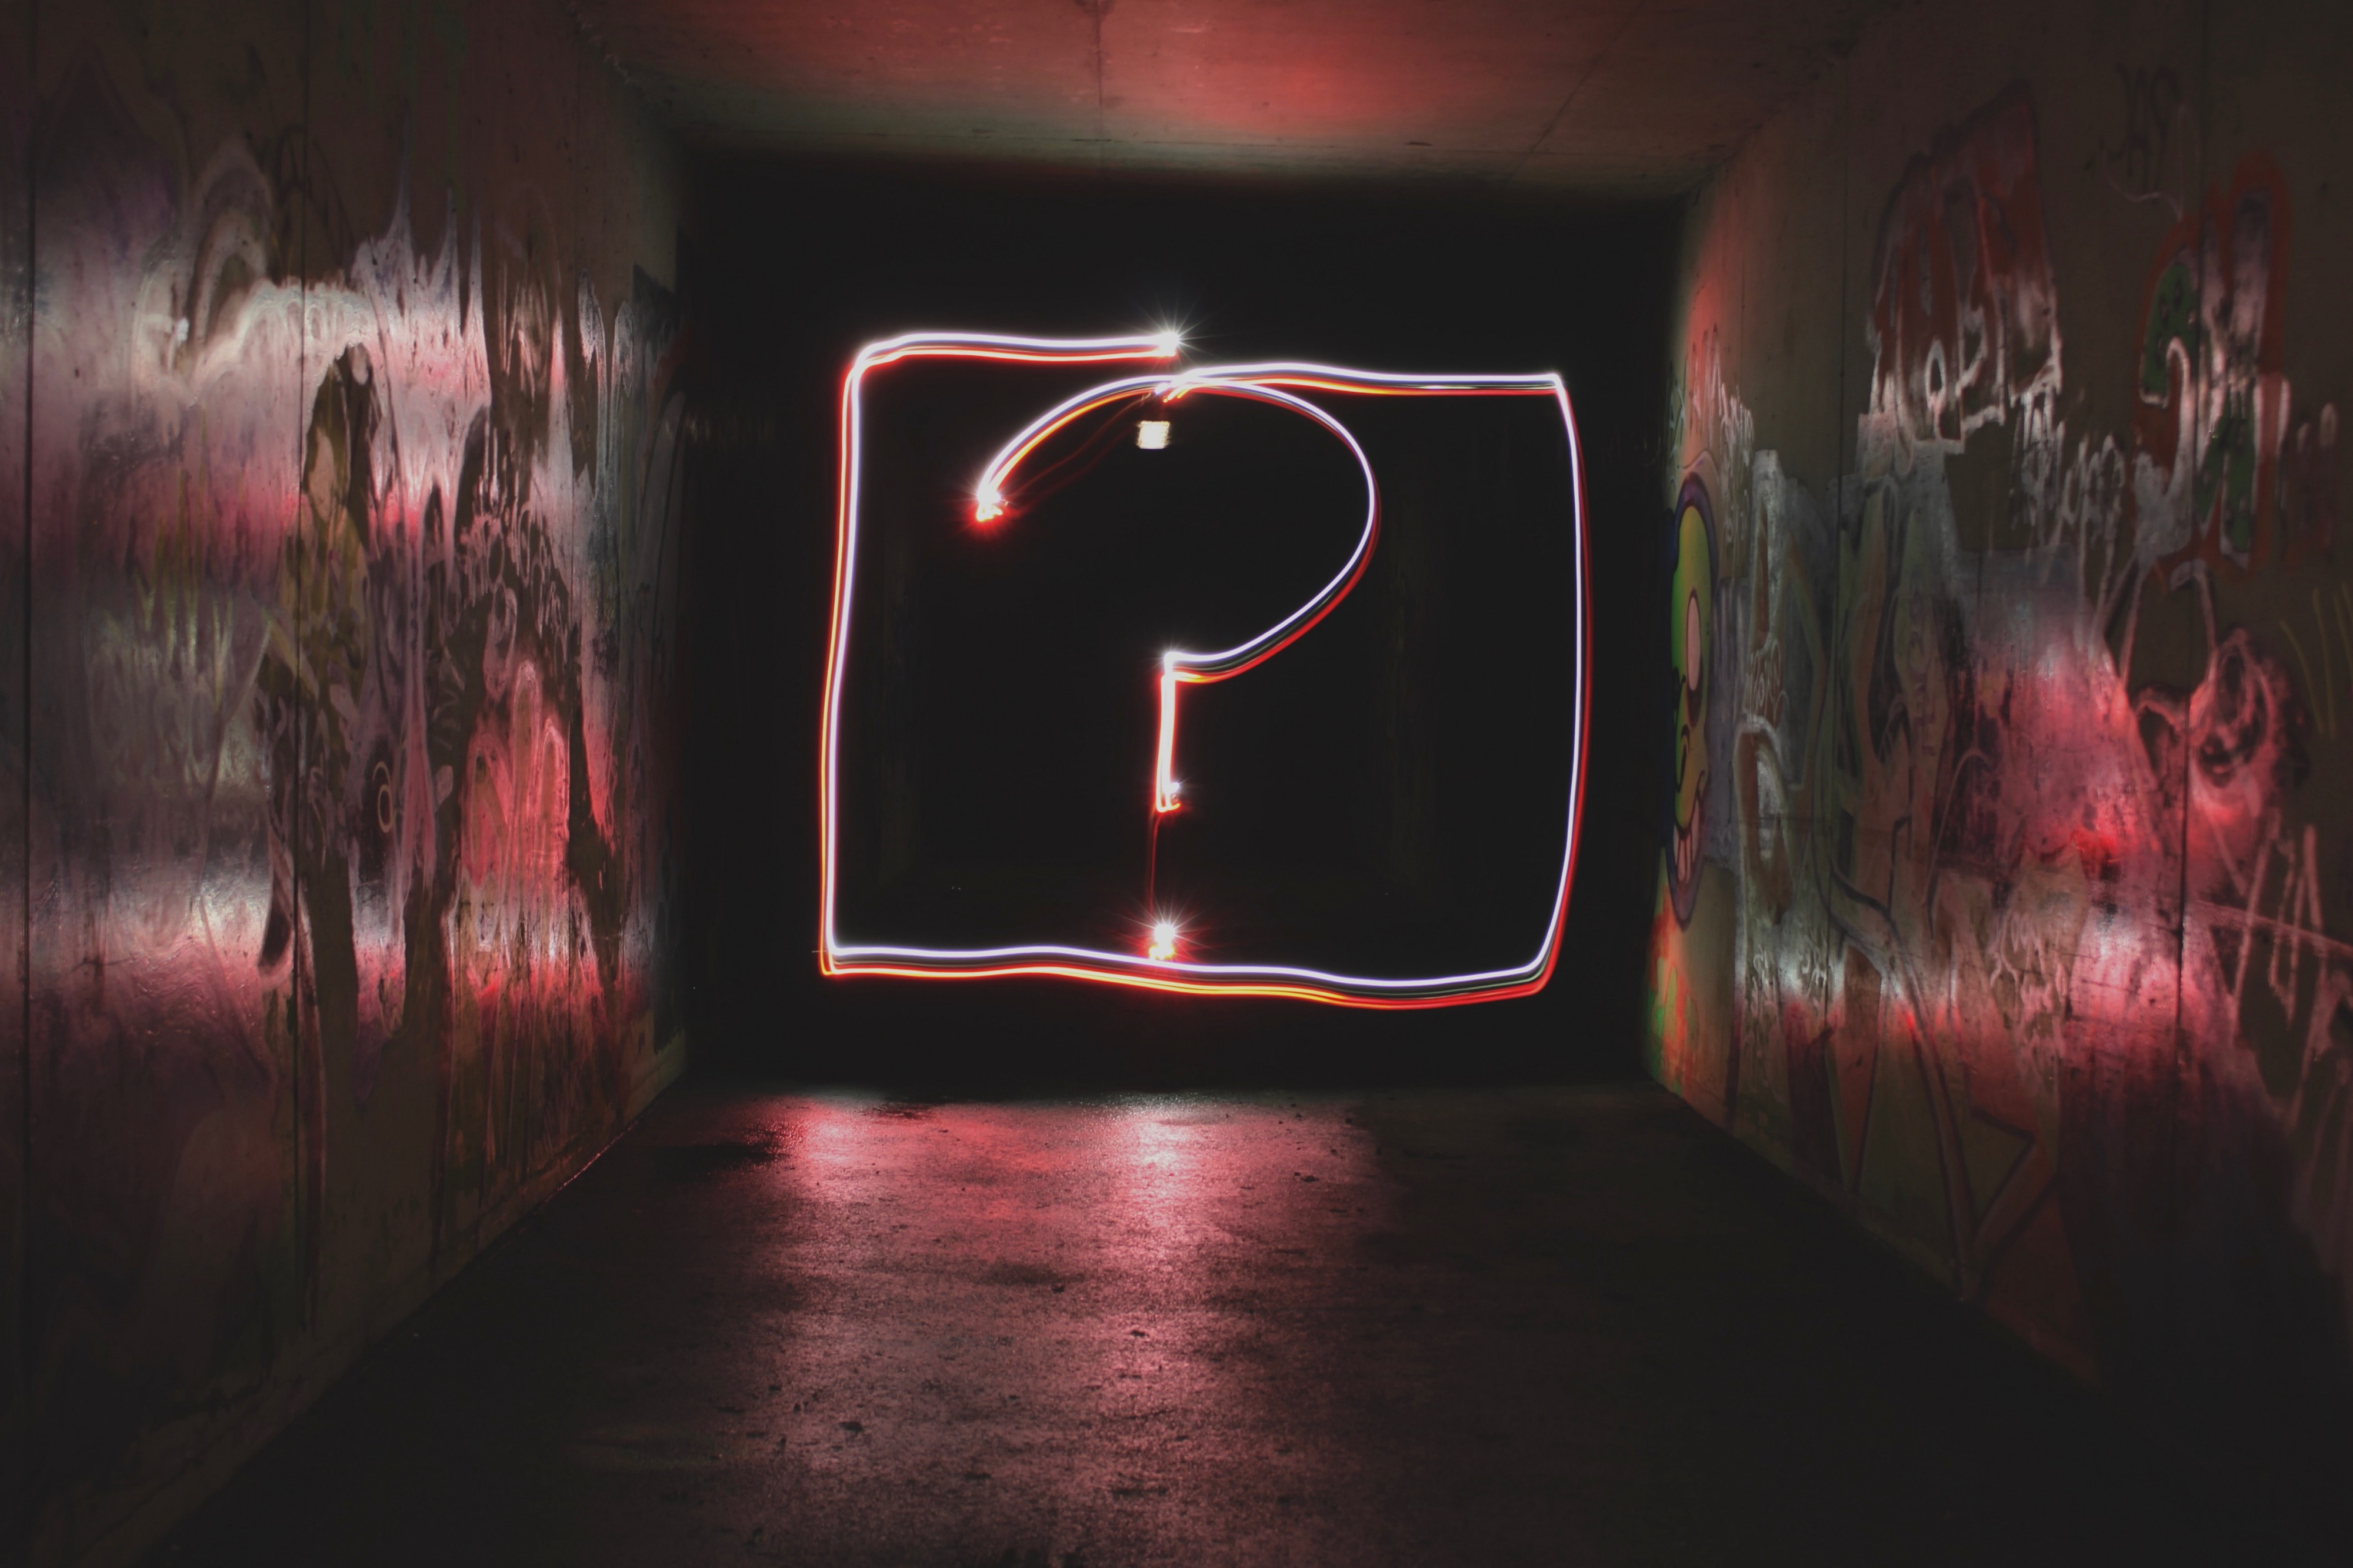 Neon sign with question mark